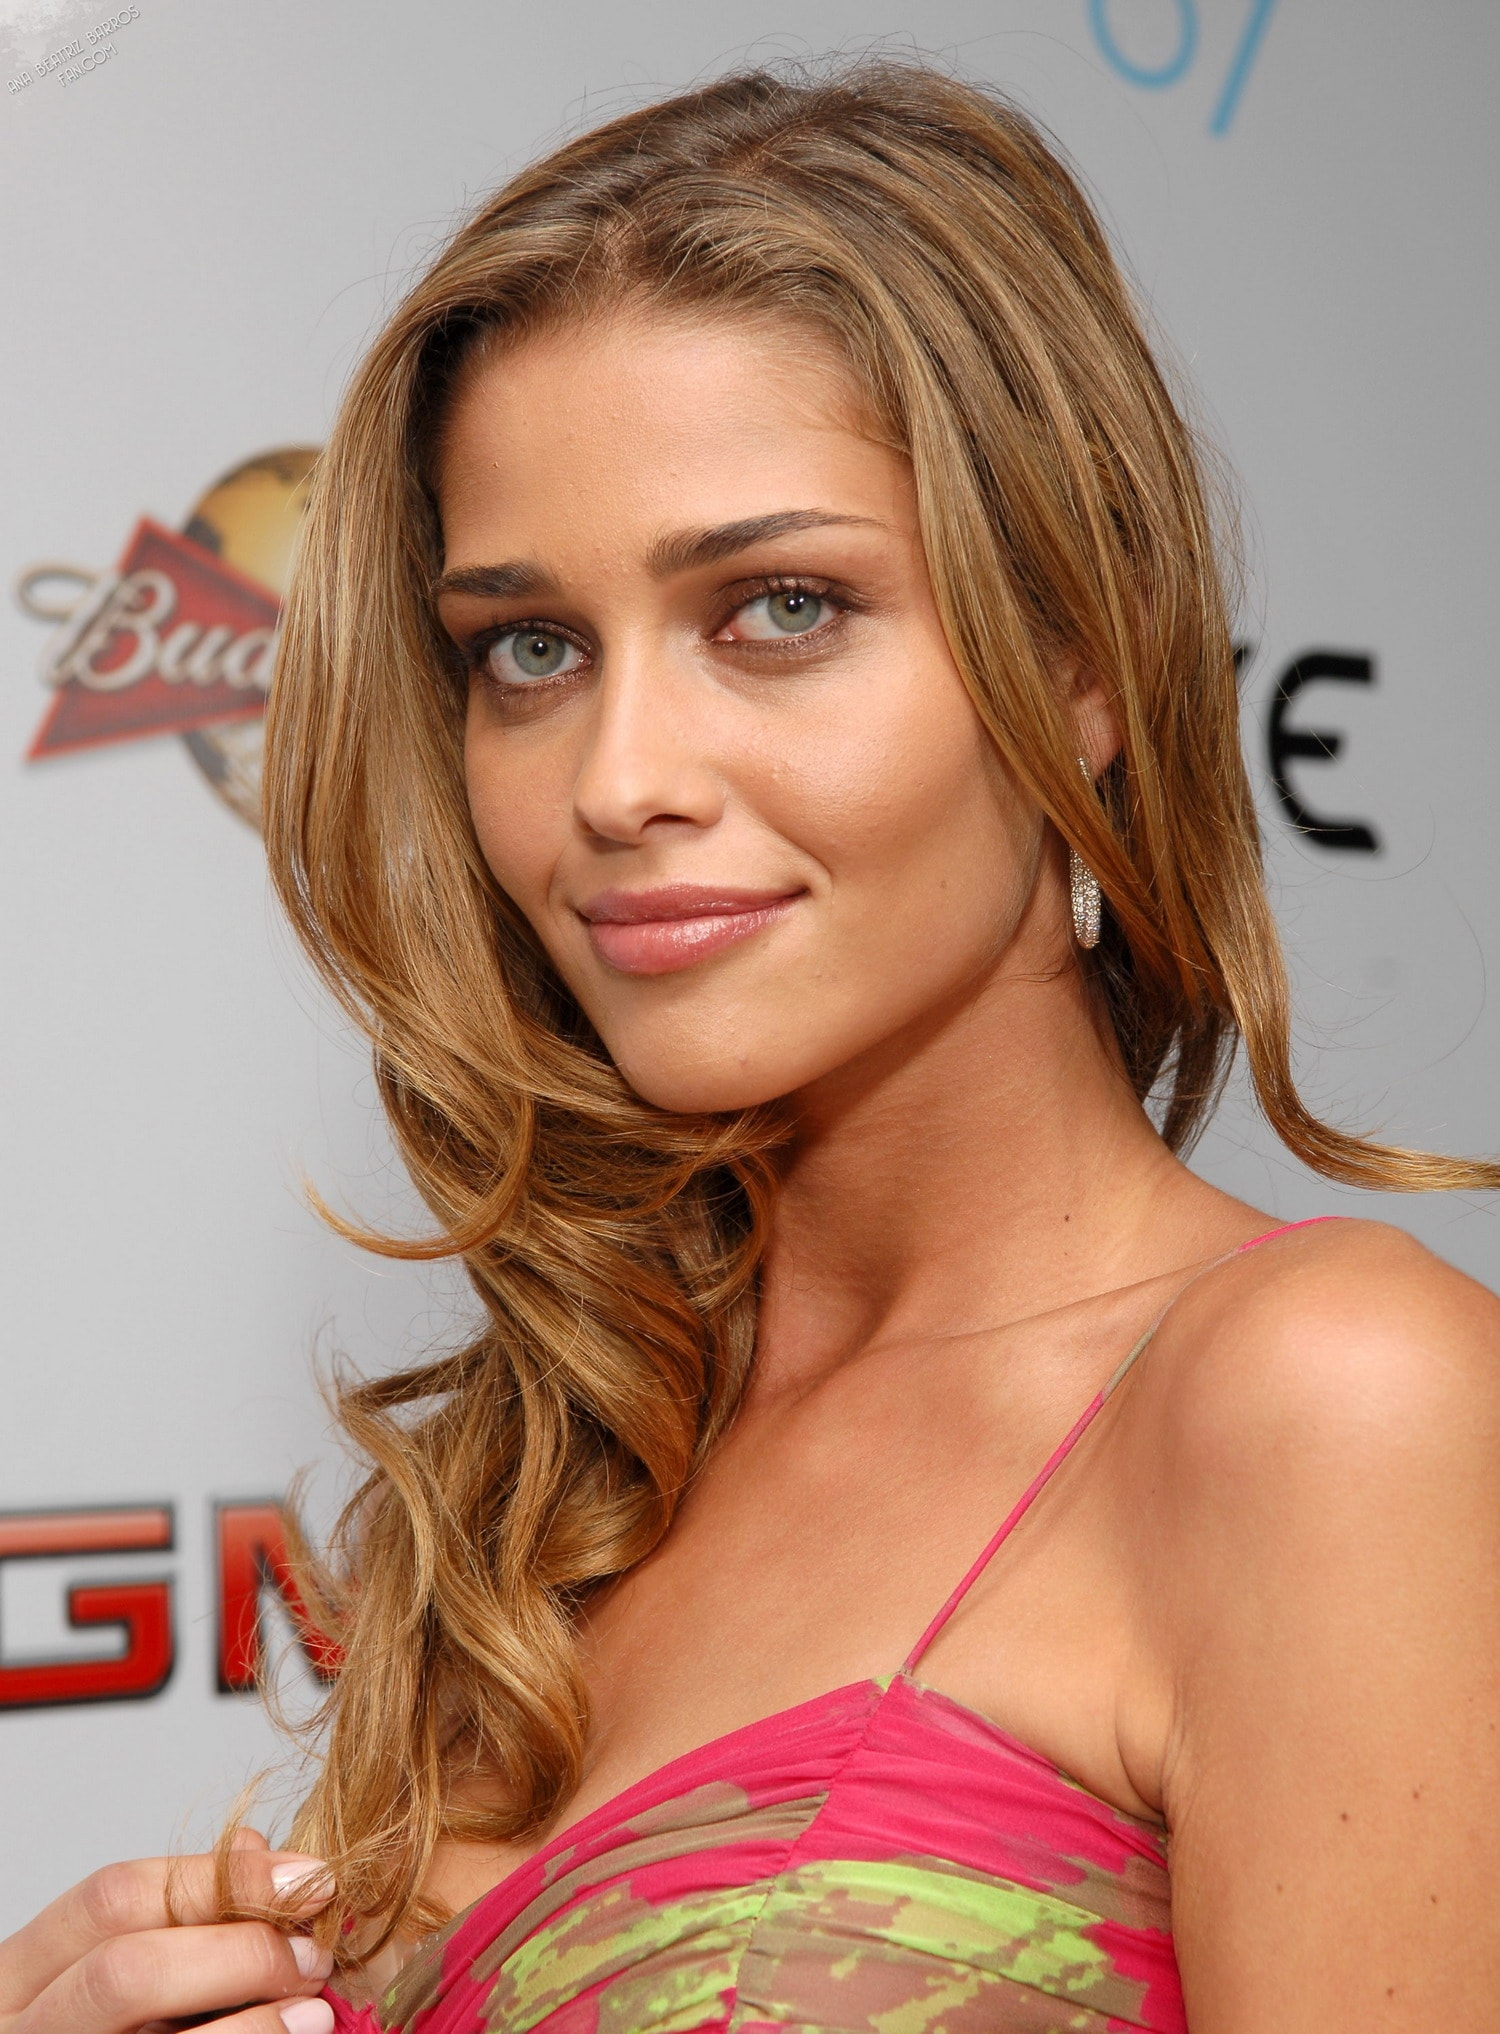 Ana Beatriz Barros HQ wallpapers